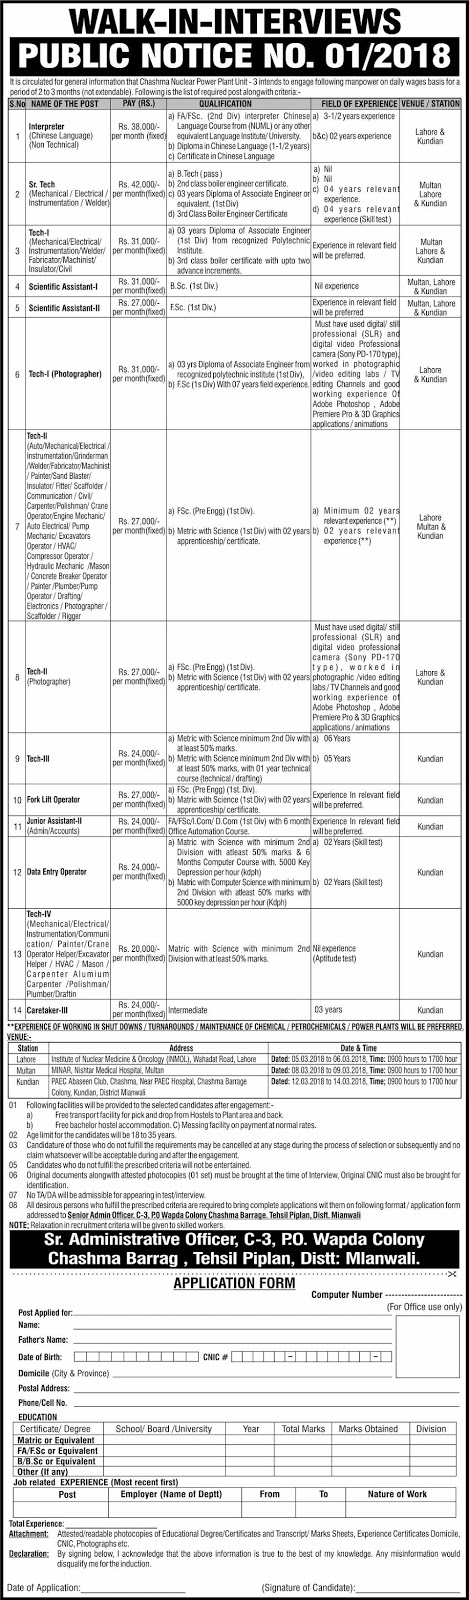 Atomic Energy Commission Jobs 2018 Public Notice 012018 Chasma